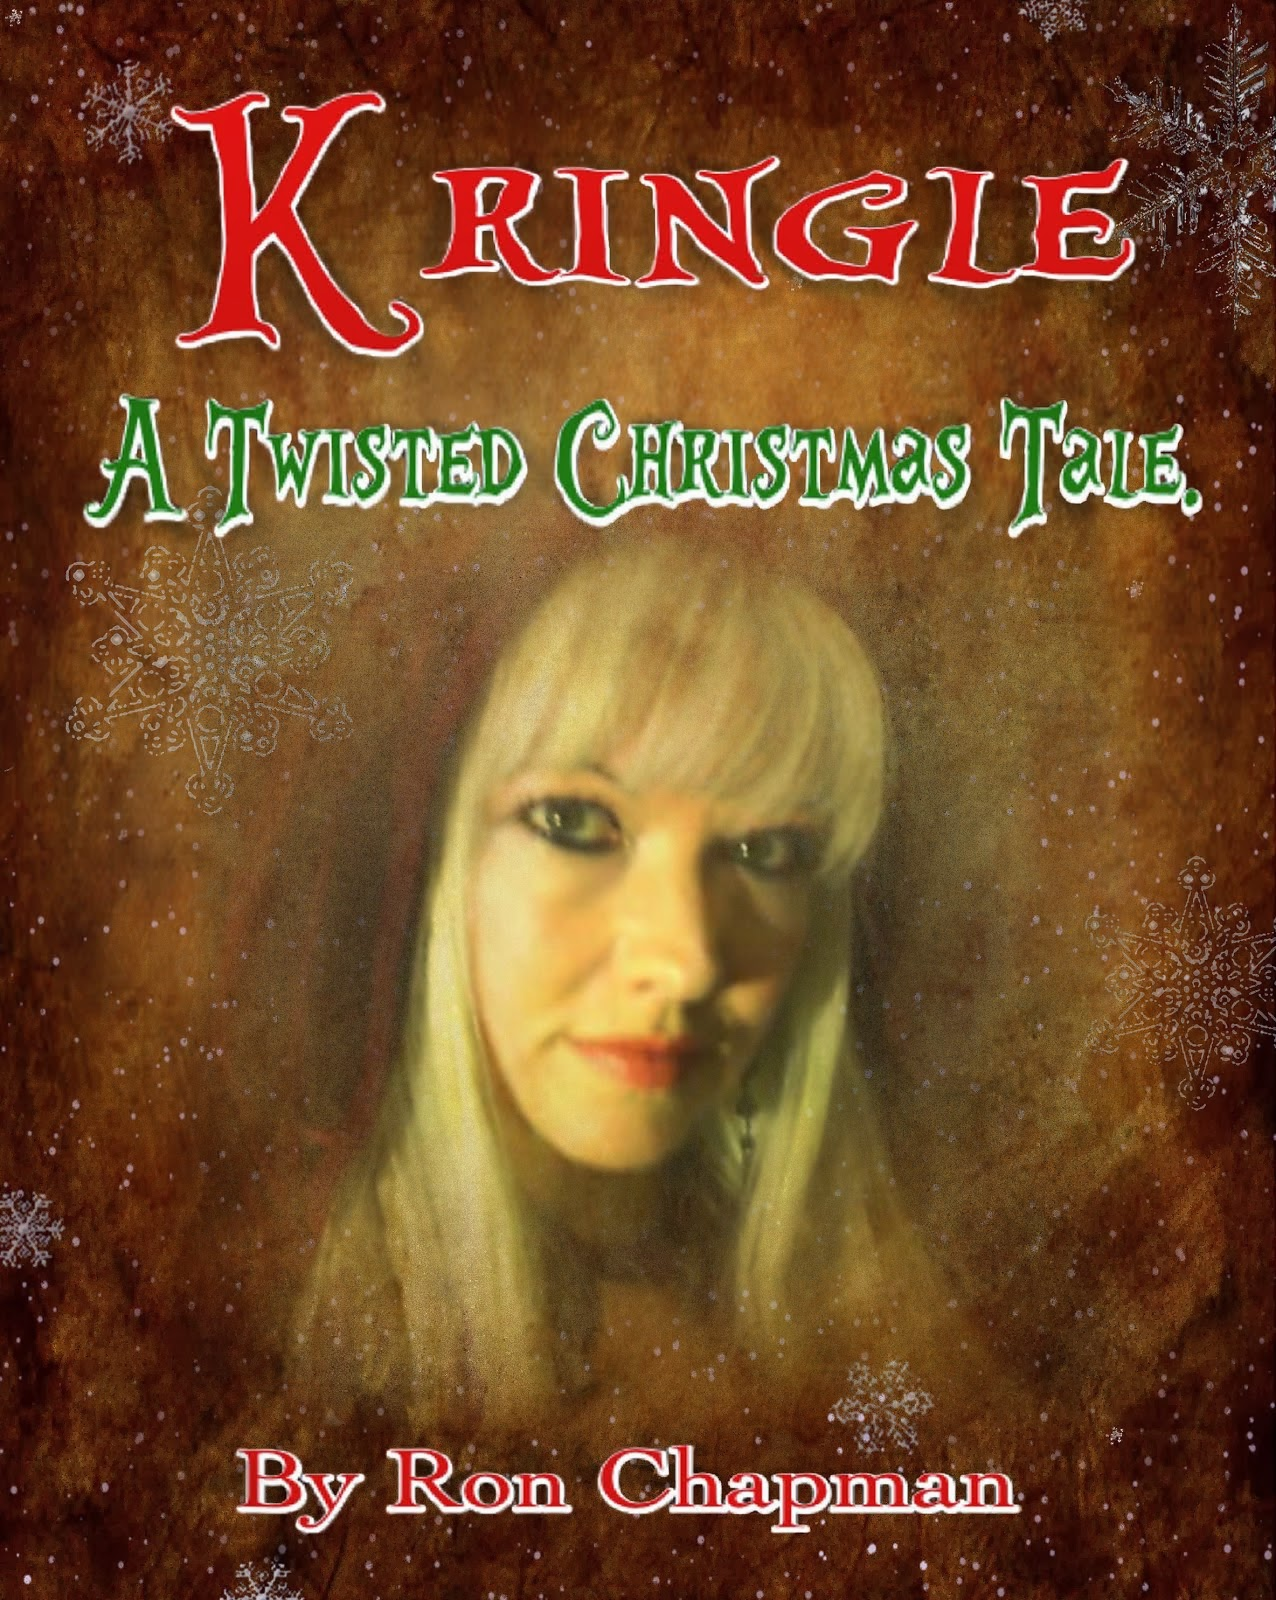 Kringle, A Twisted Christmas Tale